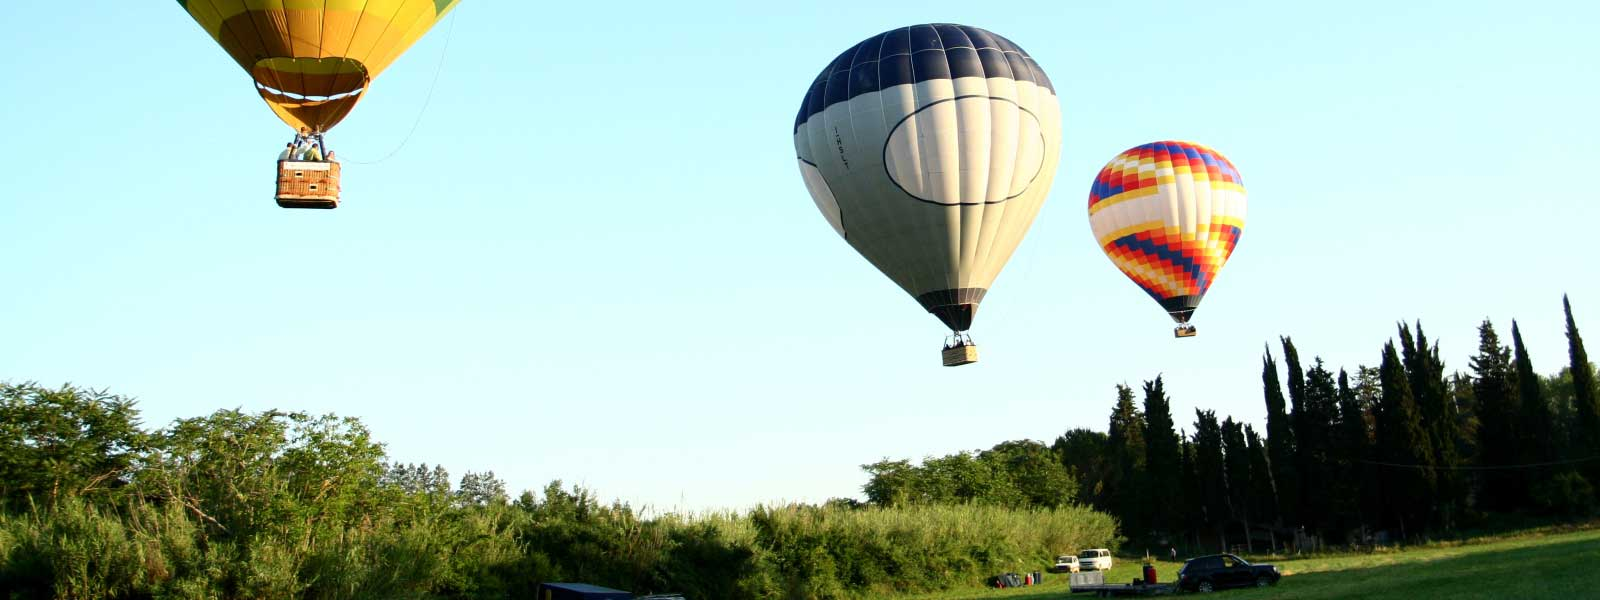 group-flight-balloon-takeoff